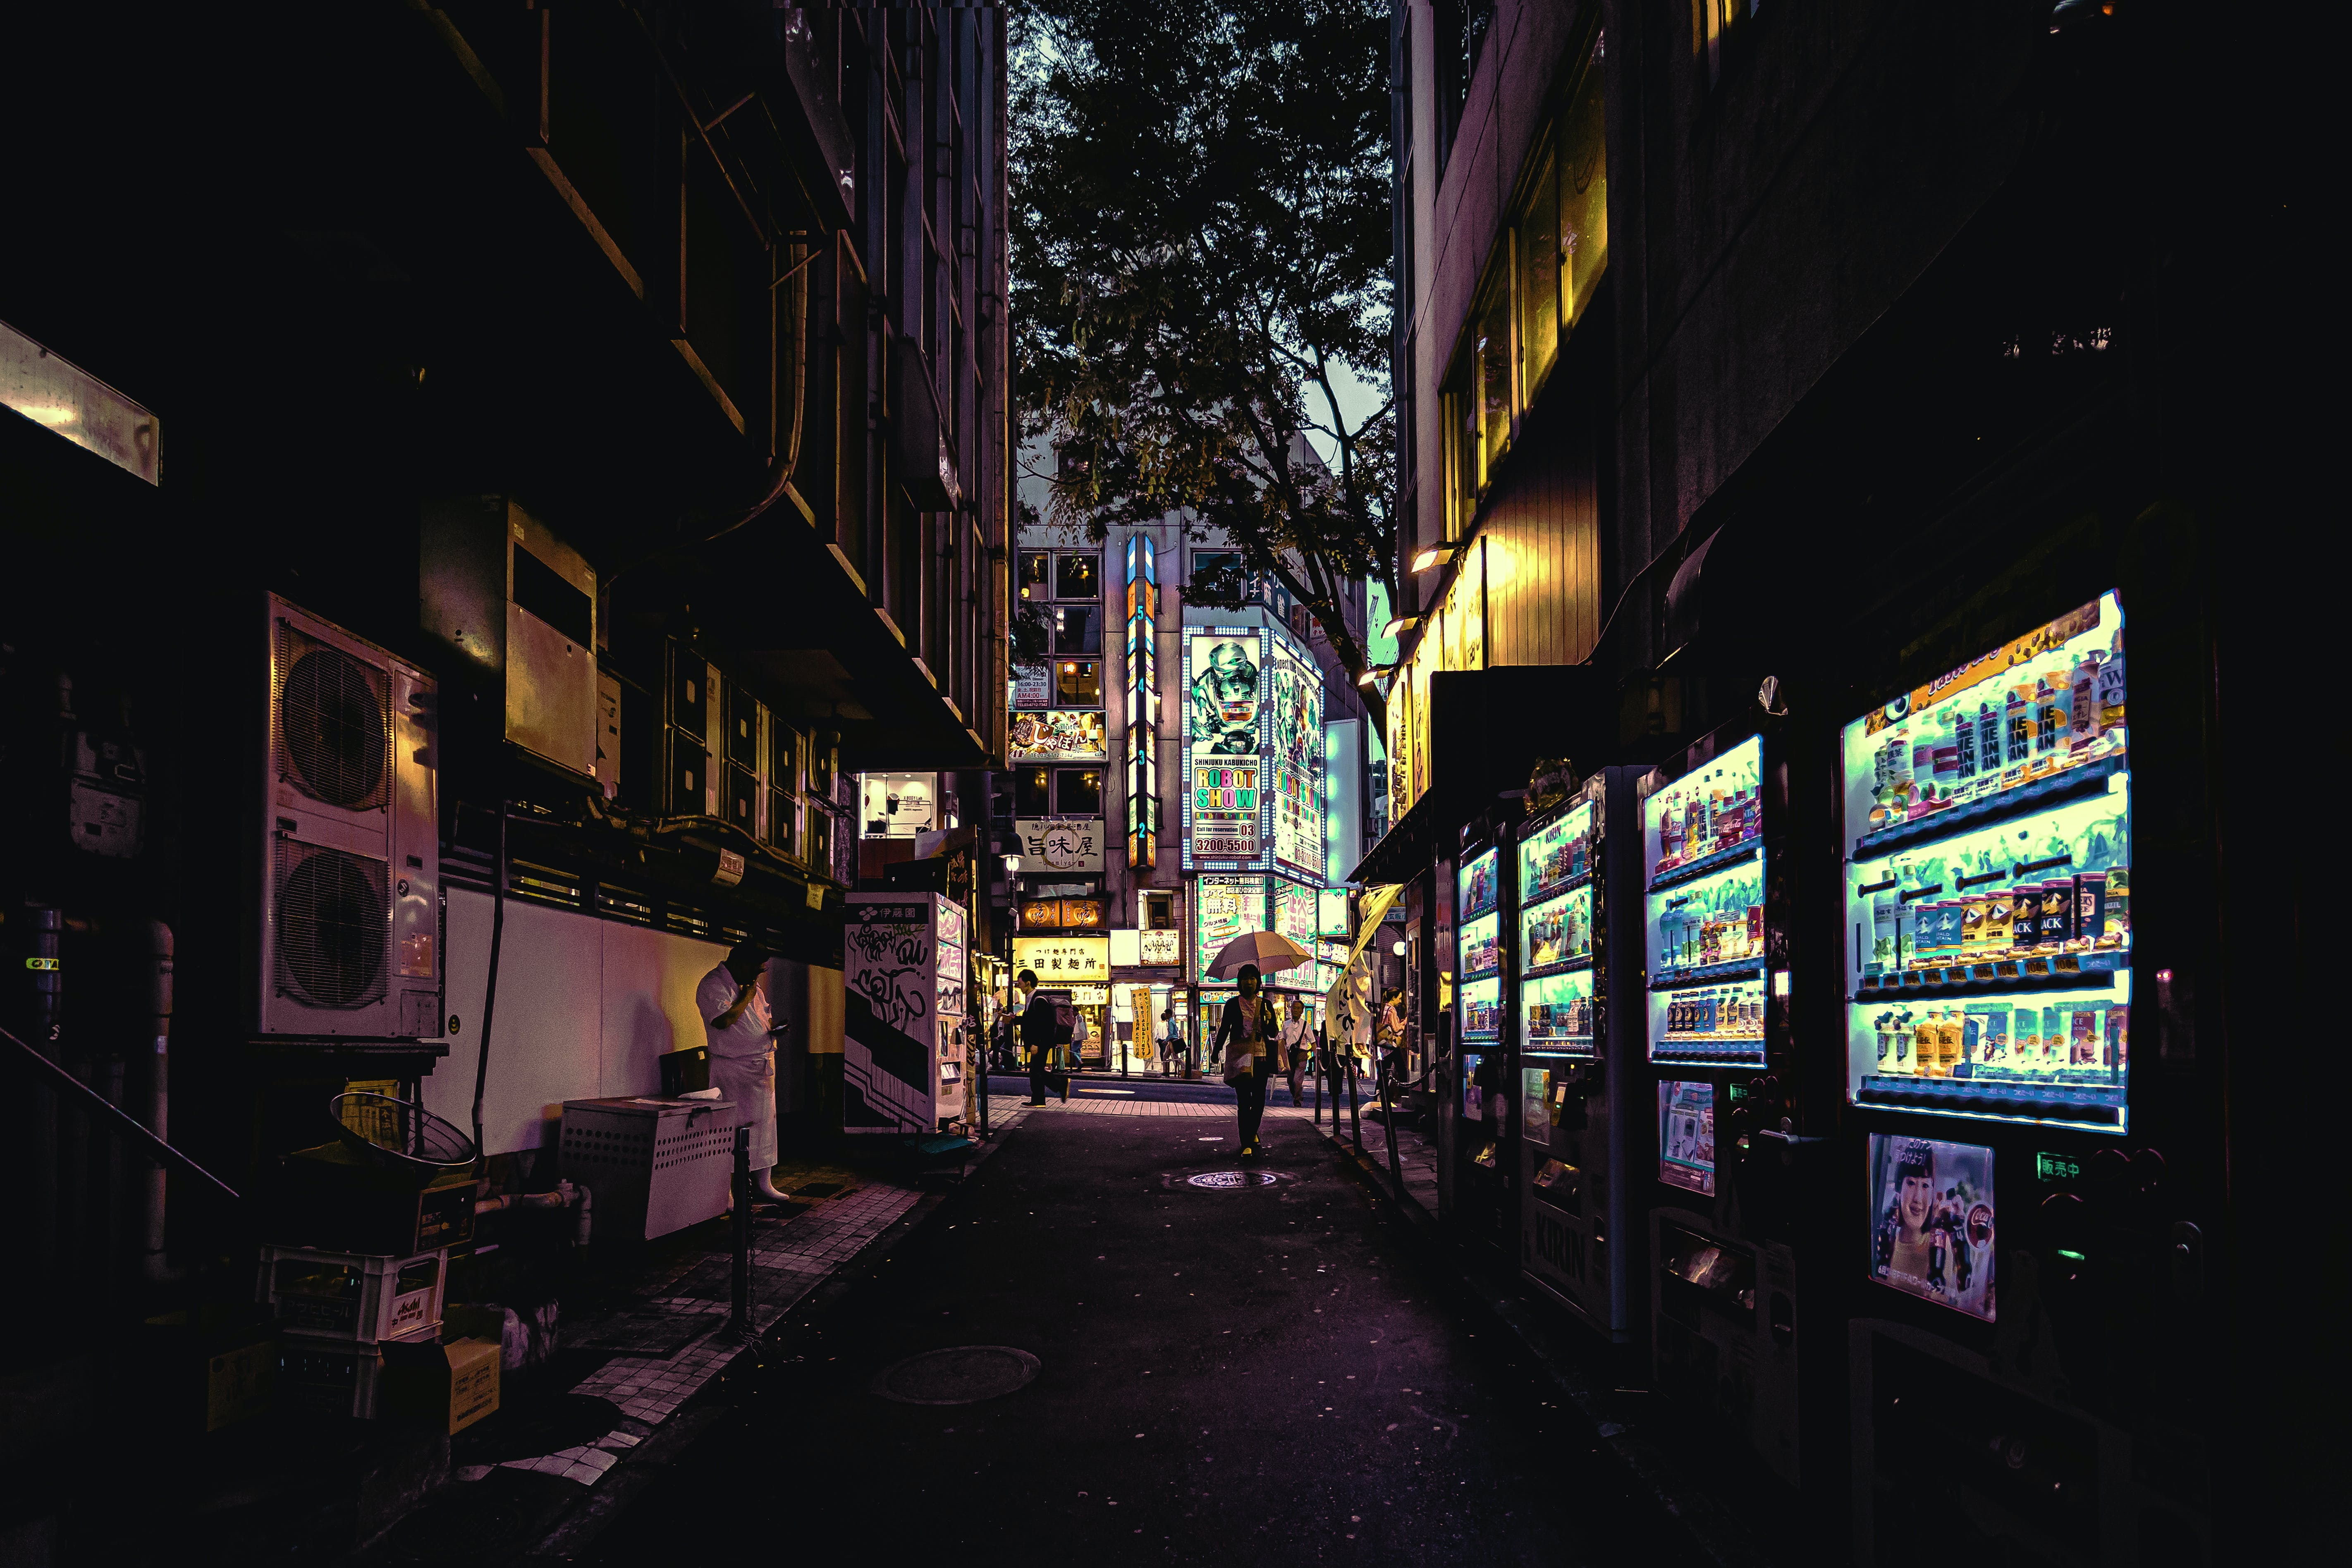 Lighted Vending Machines on Street